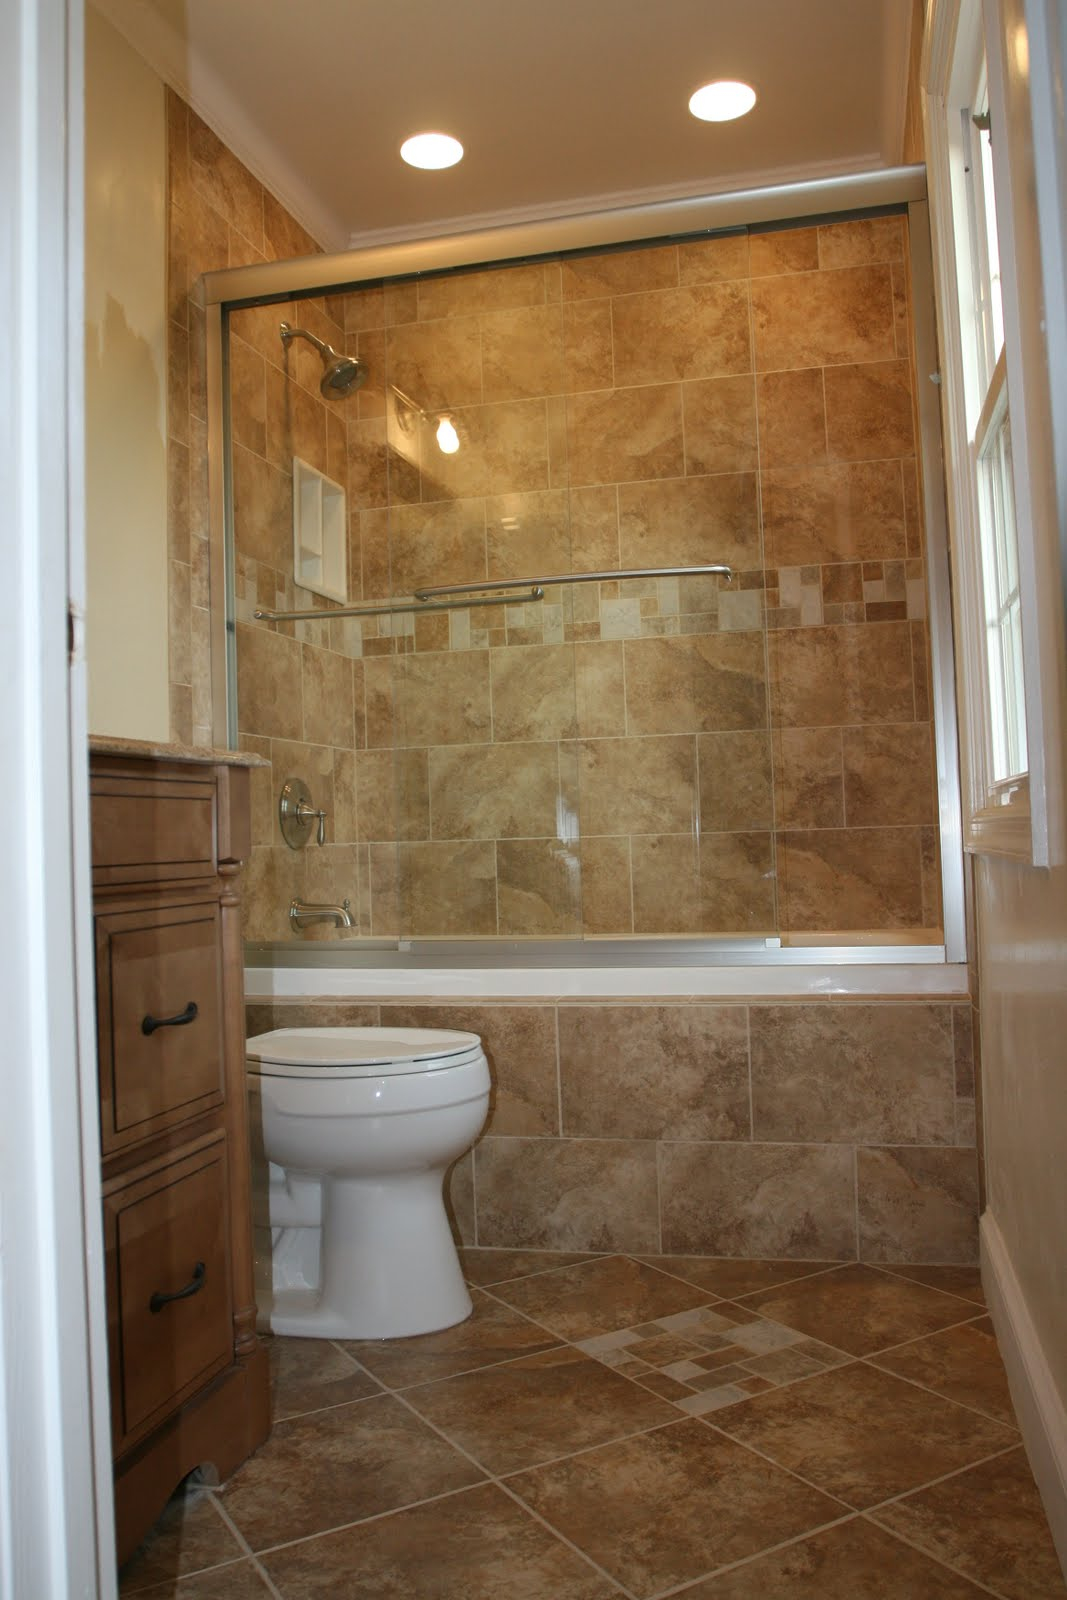 Bathroom remodeling design ideas tile shower niches for Redo bathtub